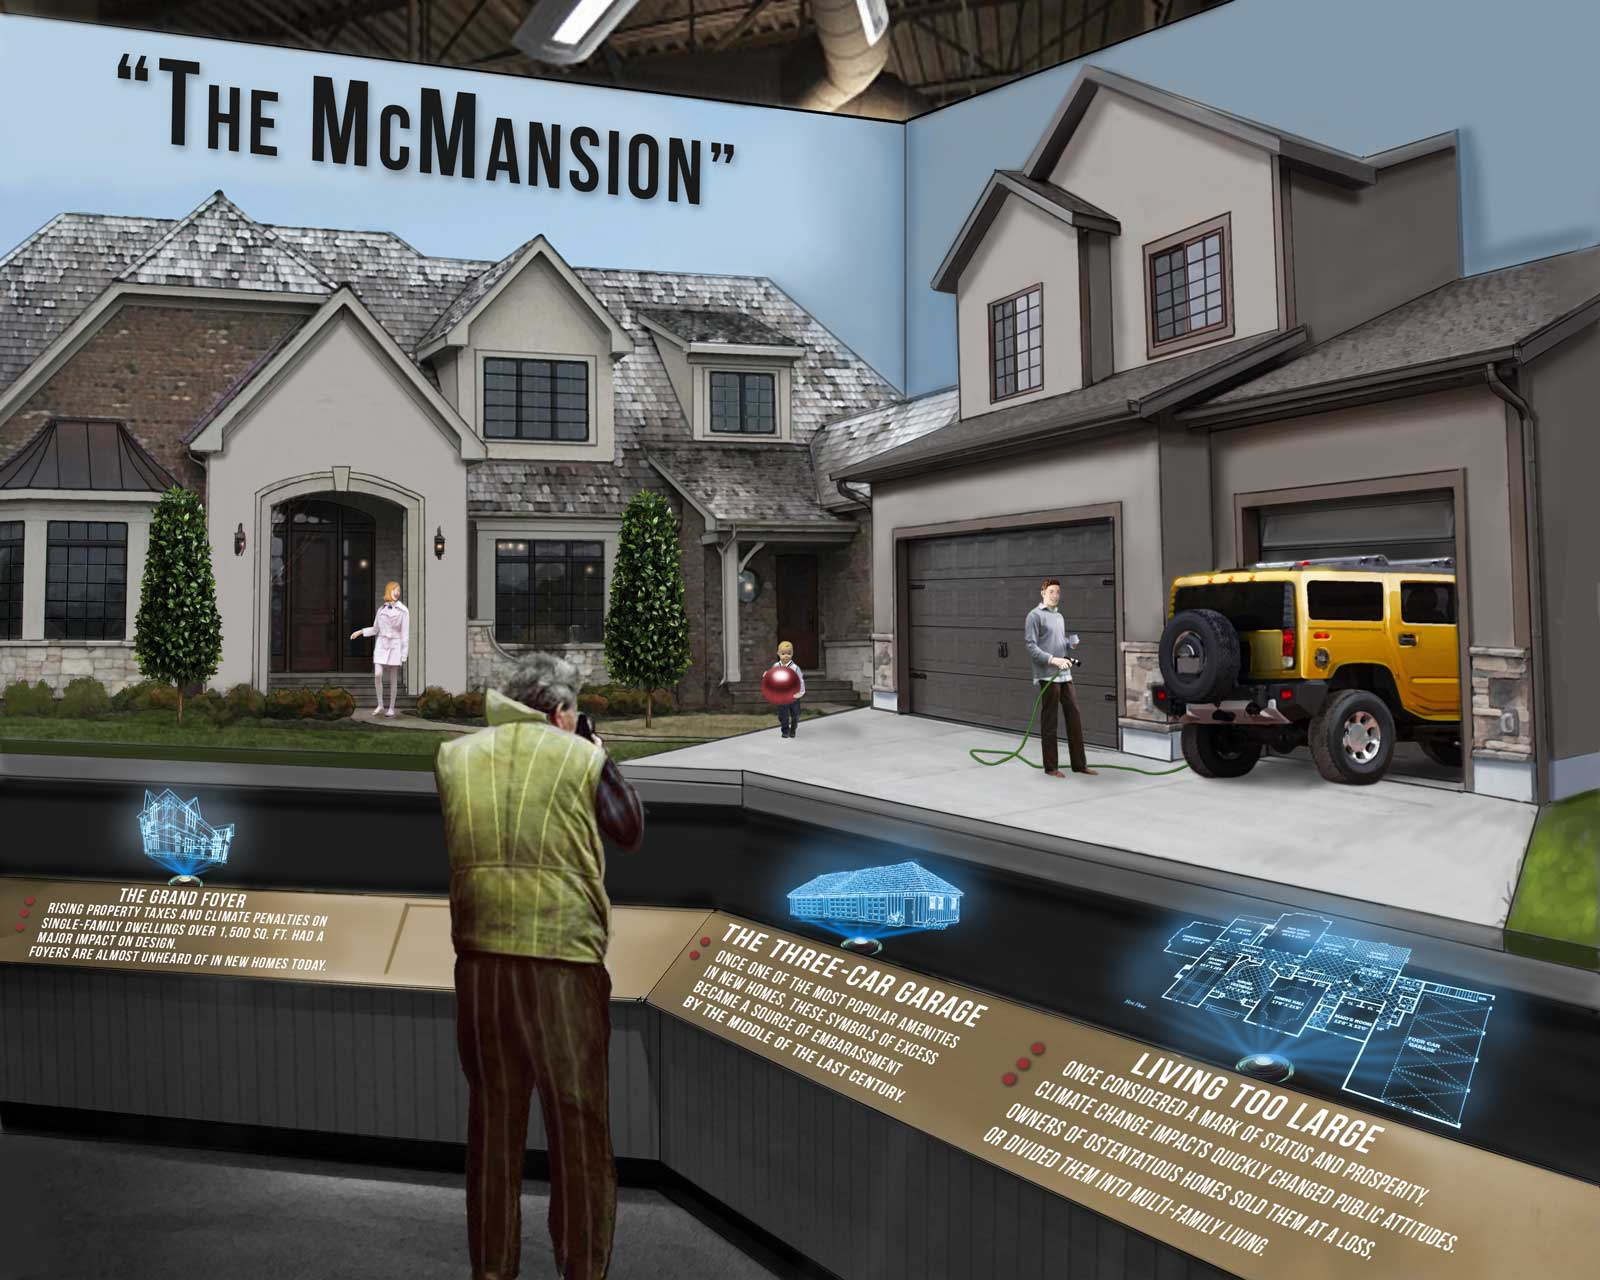 The Last McMansion